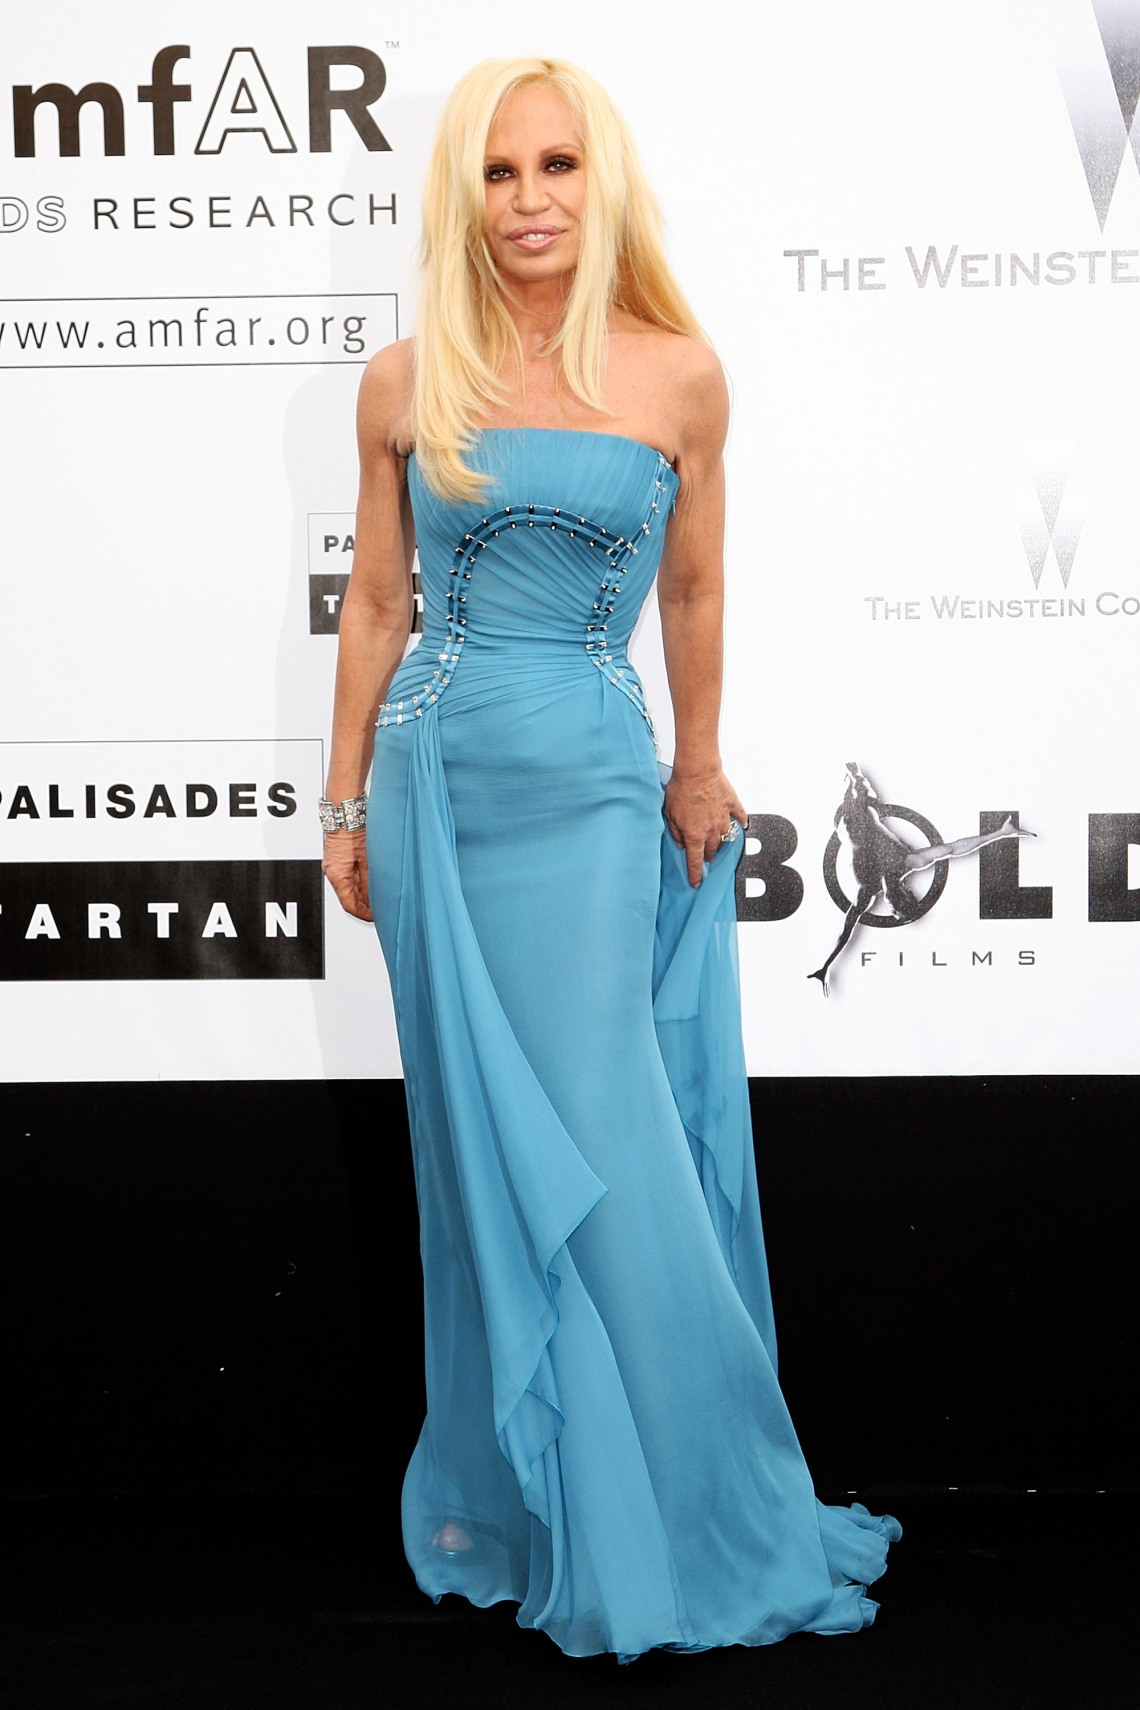 62nd Annual Cannes Film Festival - amfAR's Cinema Against AIDS Arrivals